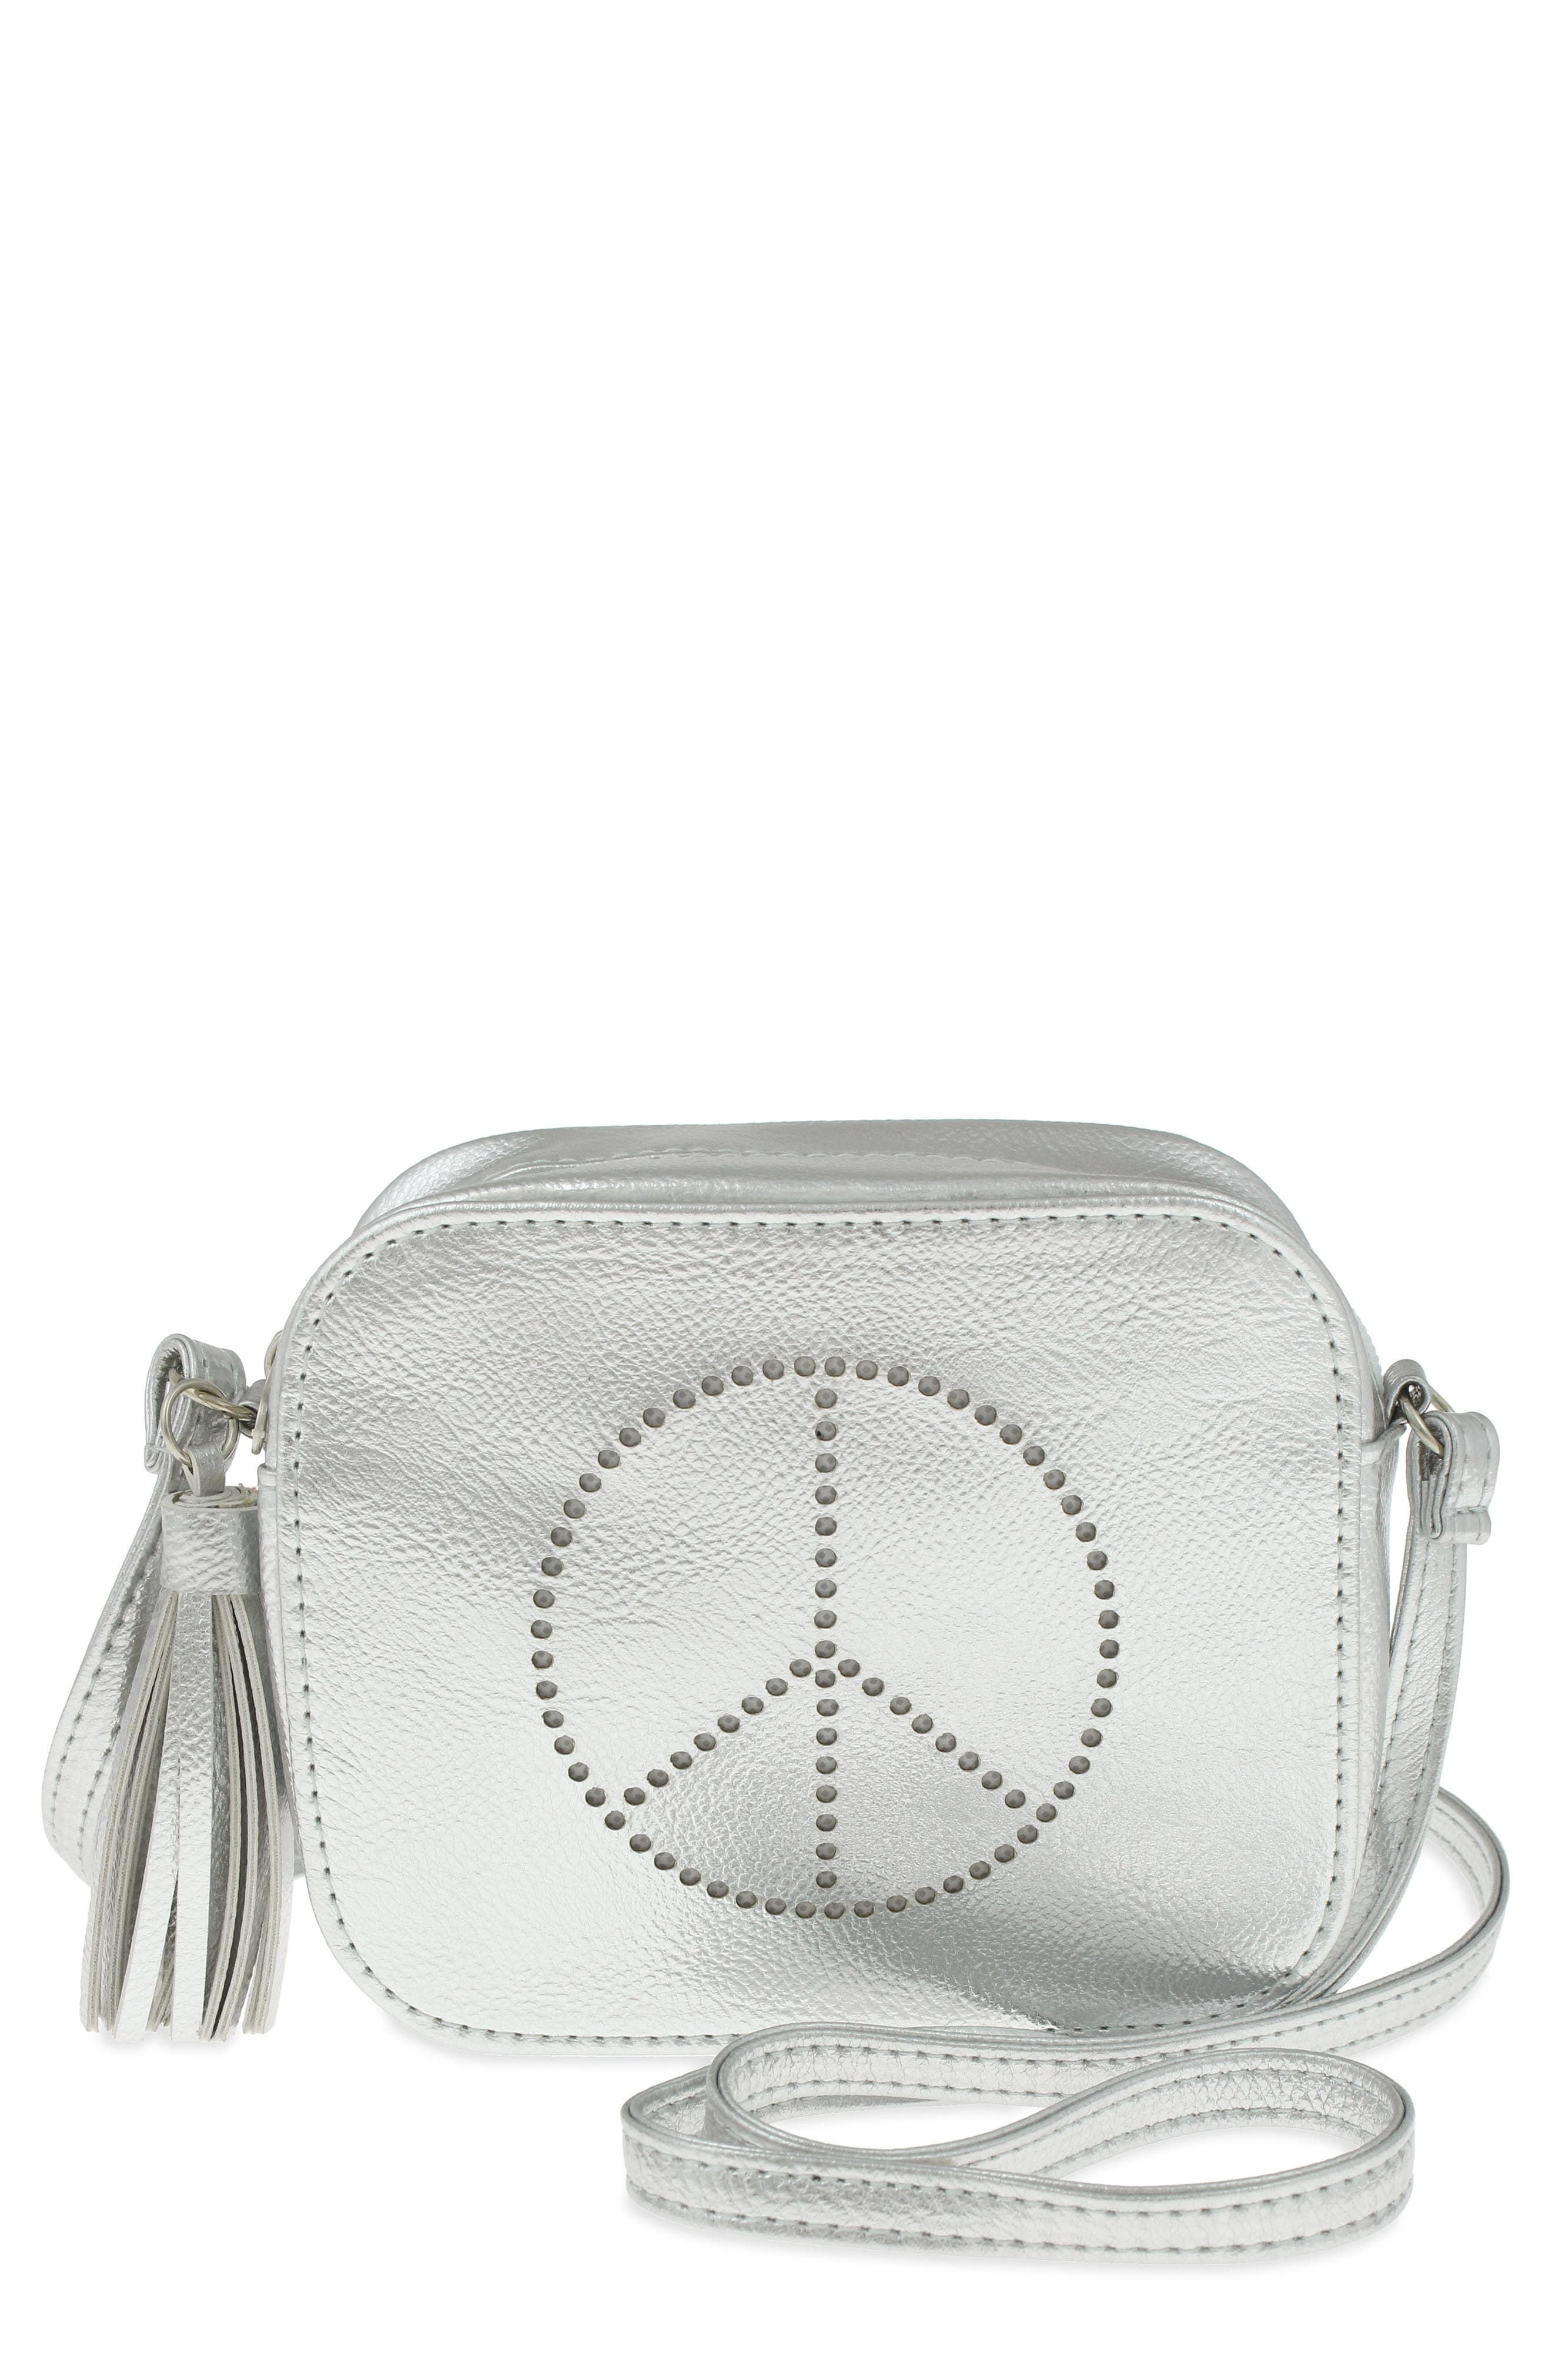 Peace Sign Faux Leather Crossbody Bag,                         Main,                         color, 047